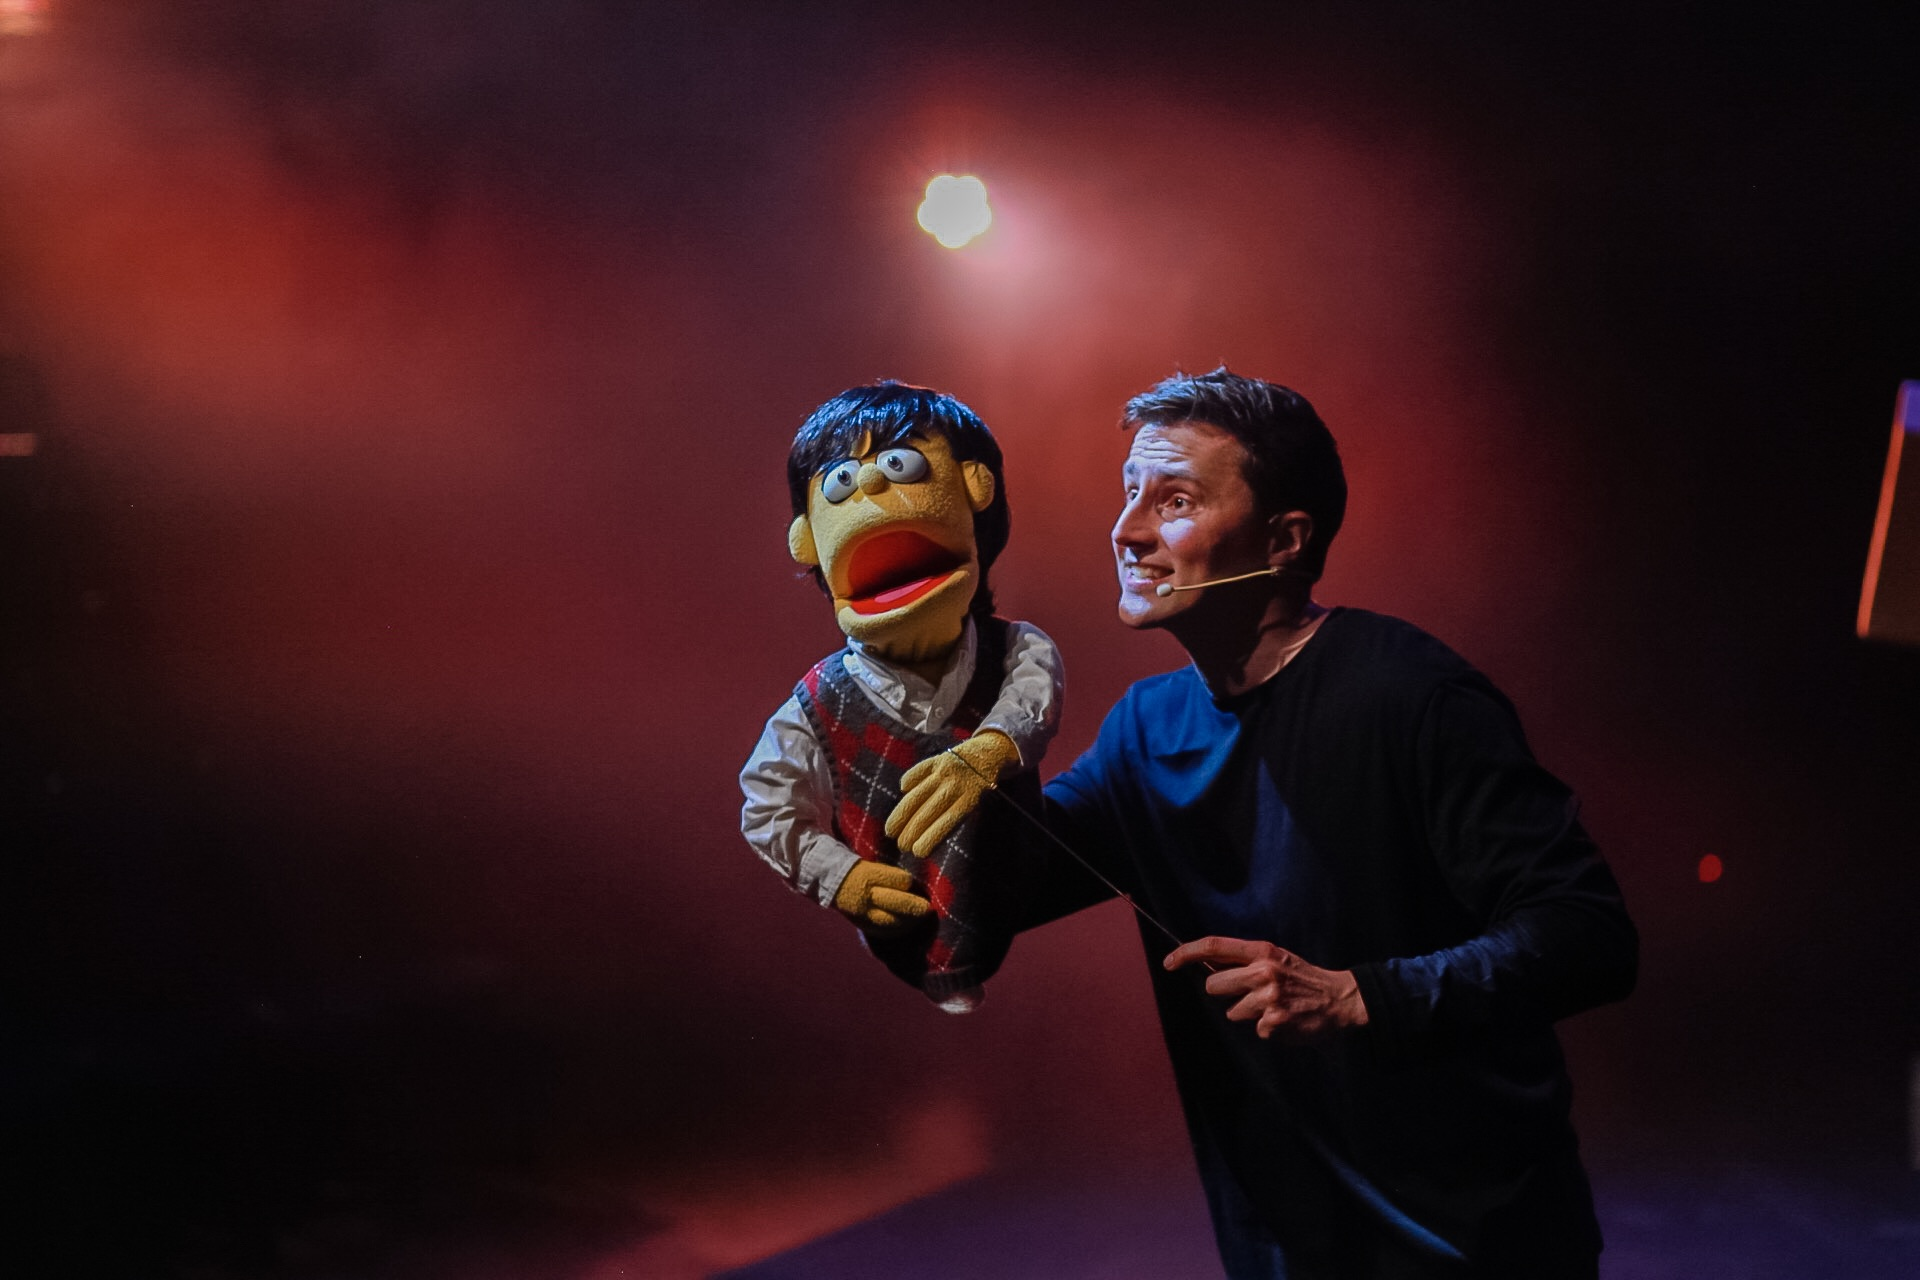 'Avenue Q': A Coming-Of-Age Story With A Twist